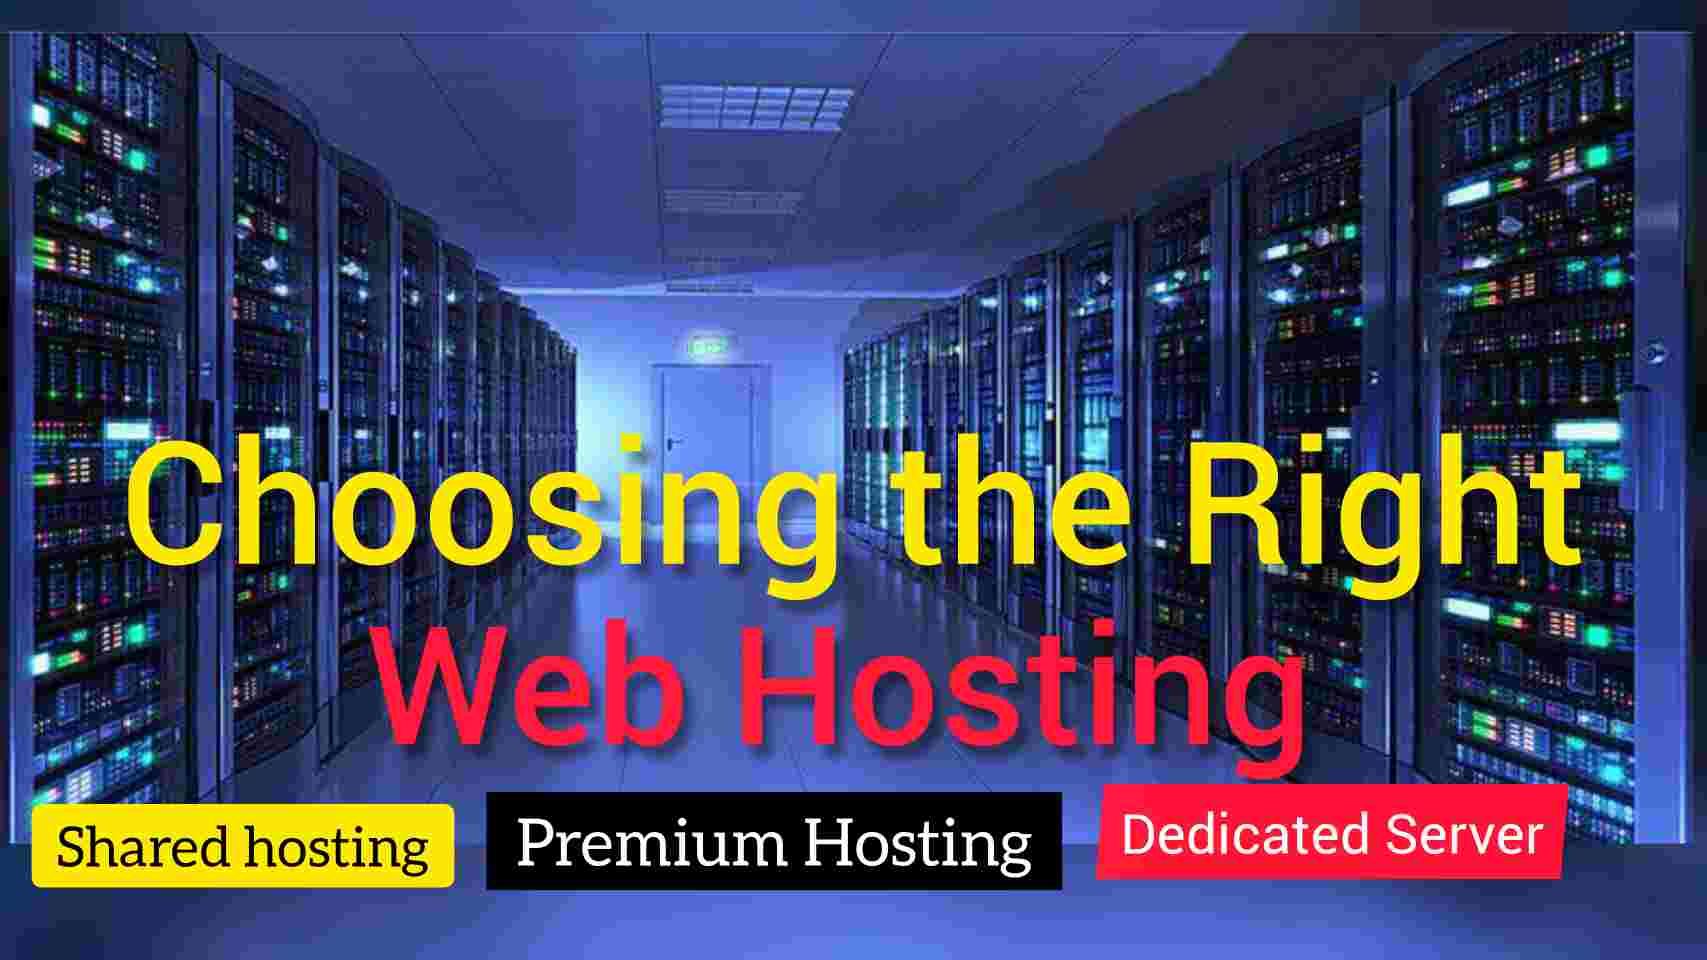 Choosing the right web hosting for website or blog